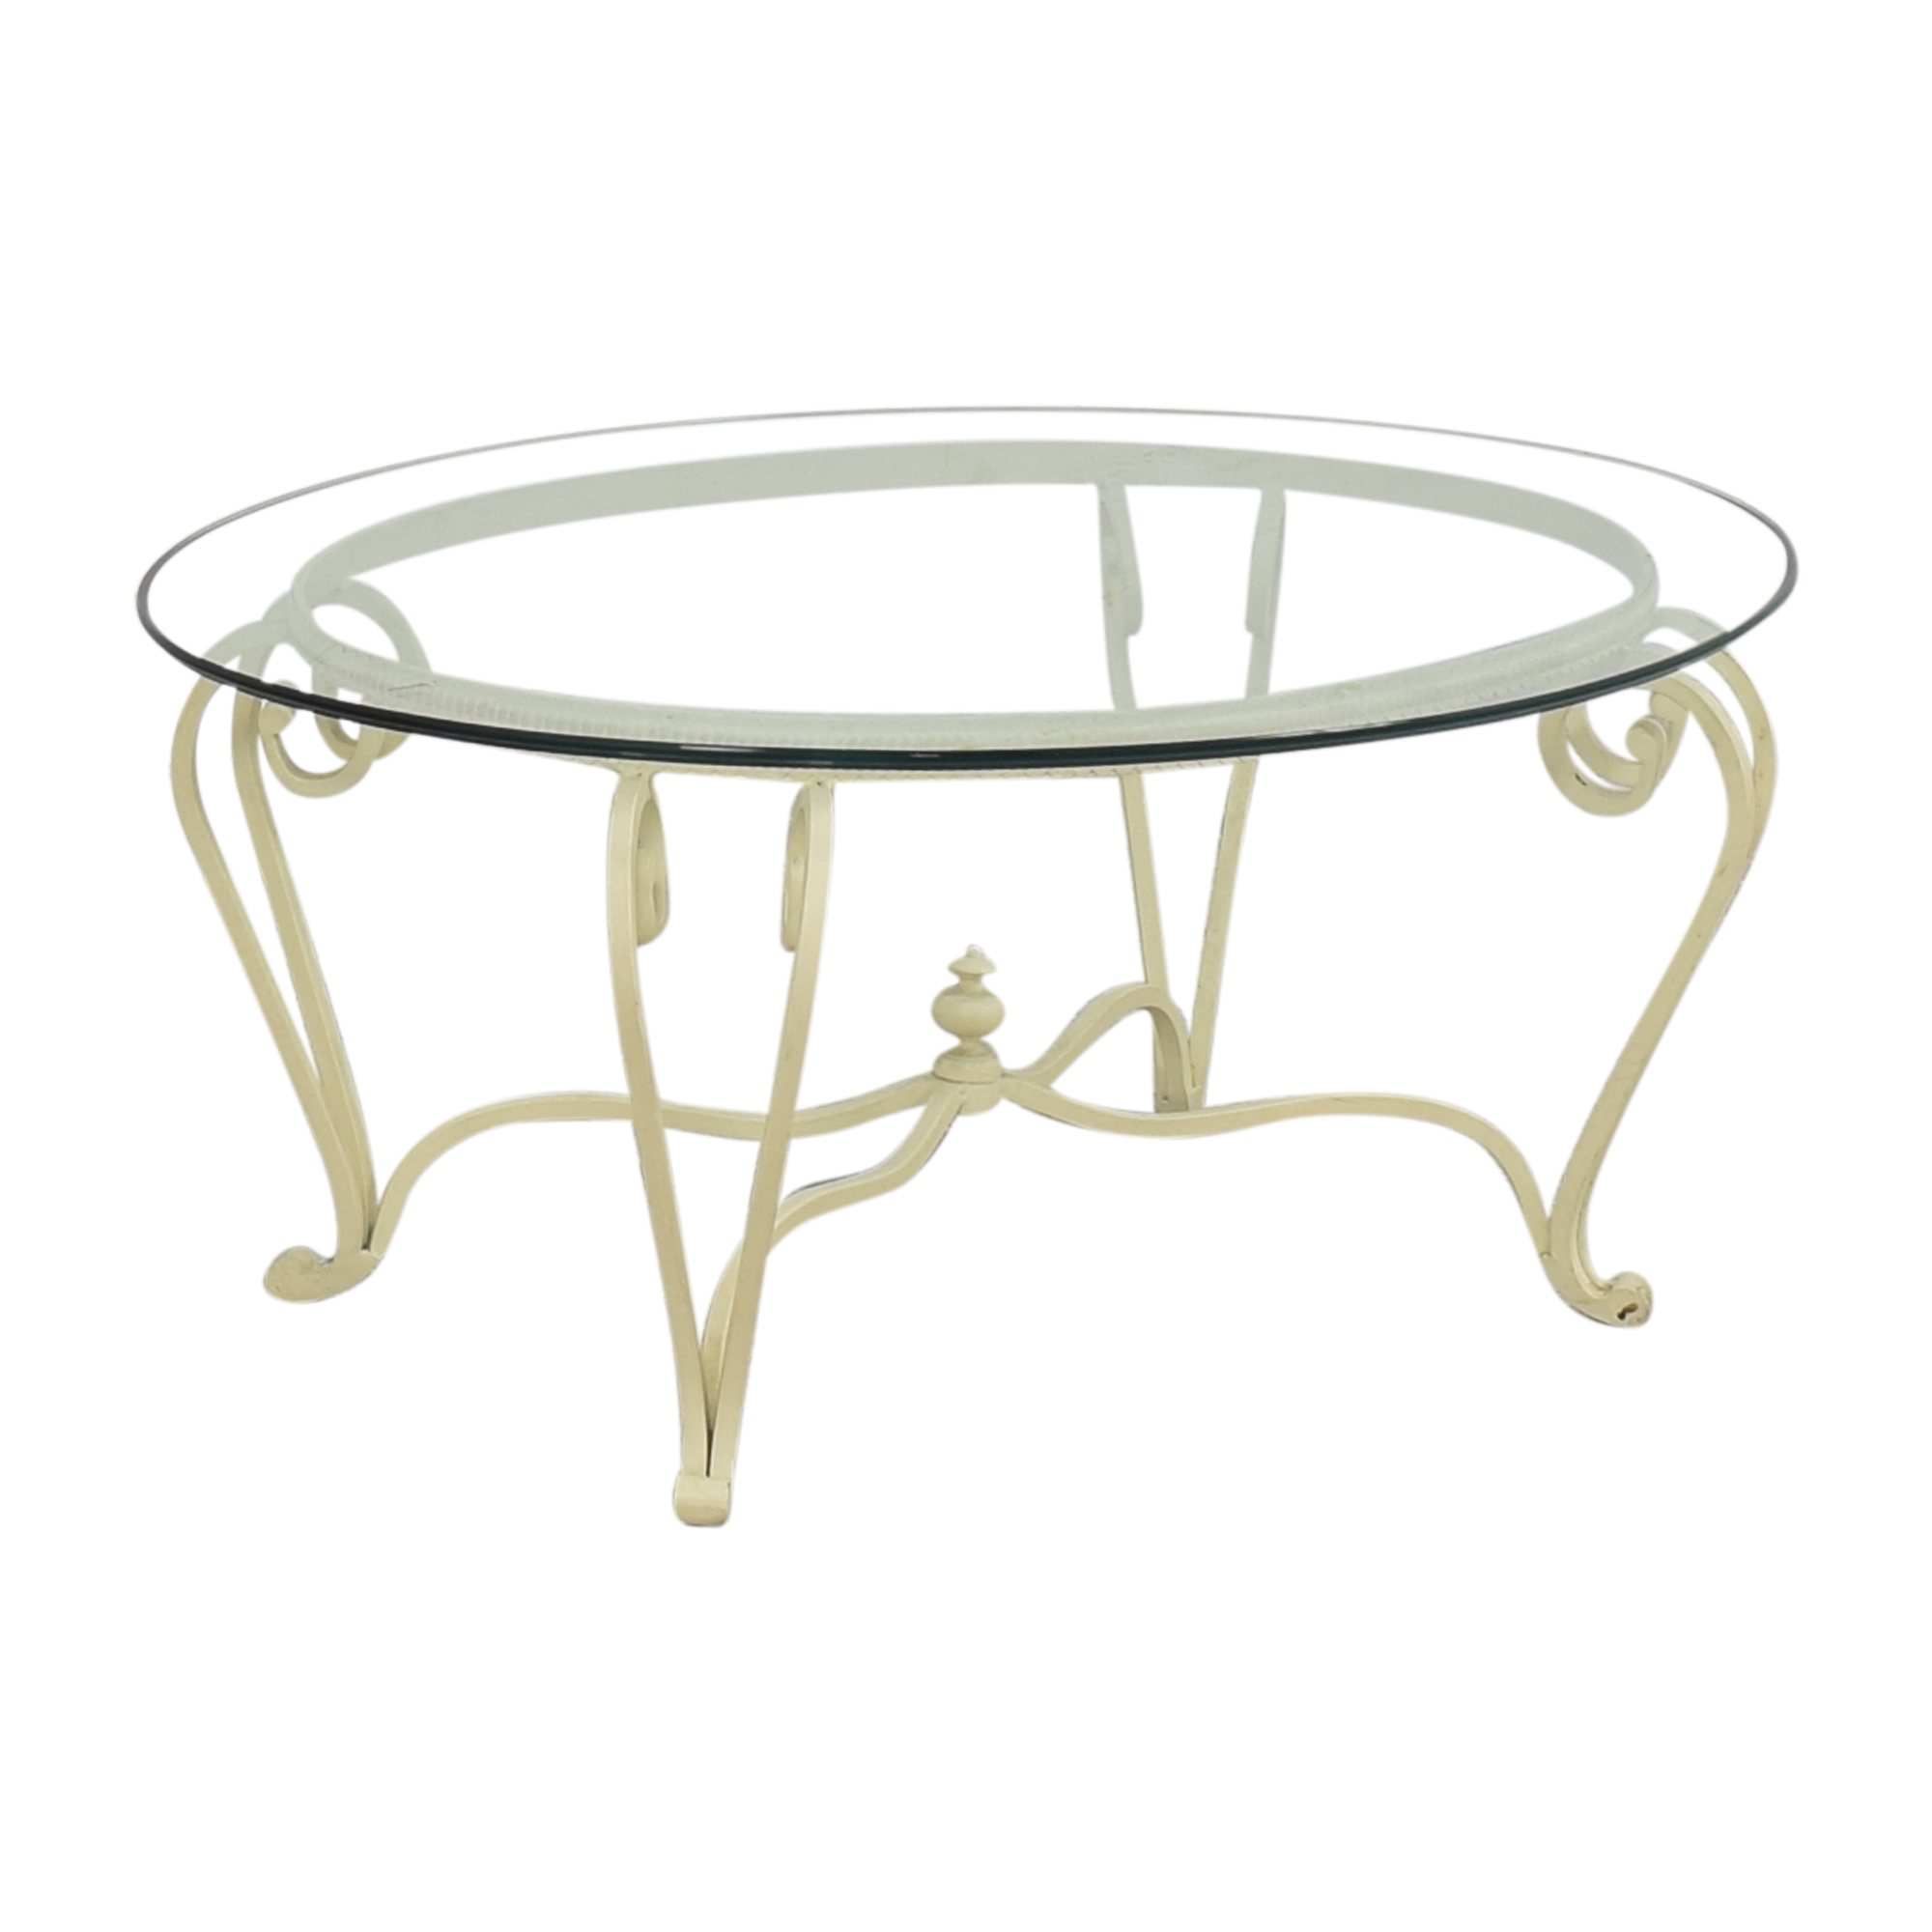 Ethan Allen Ethan Allen Oval Coffee Table Coffee Tables